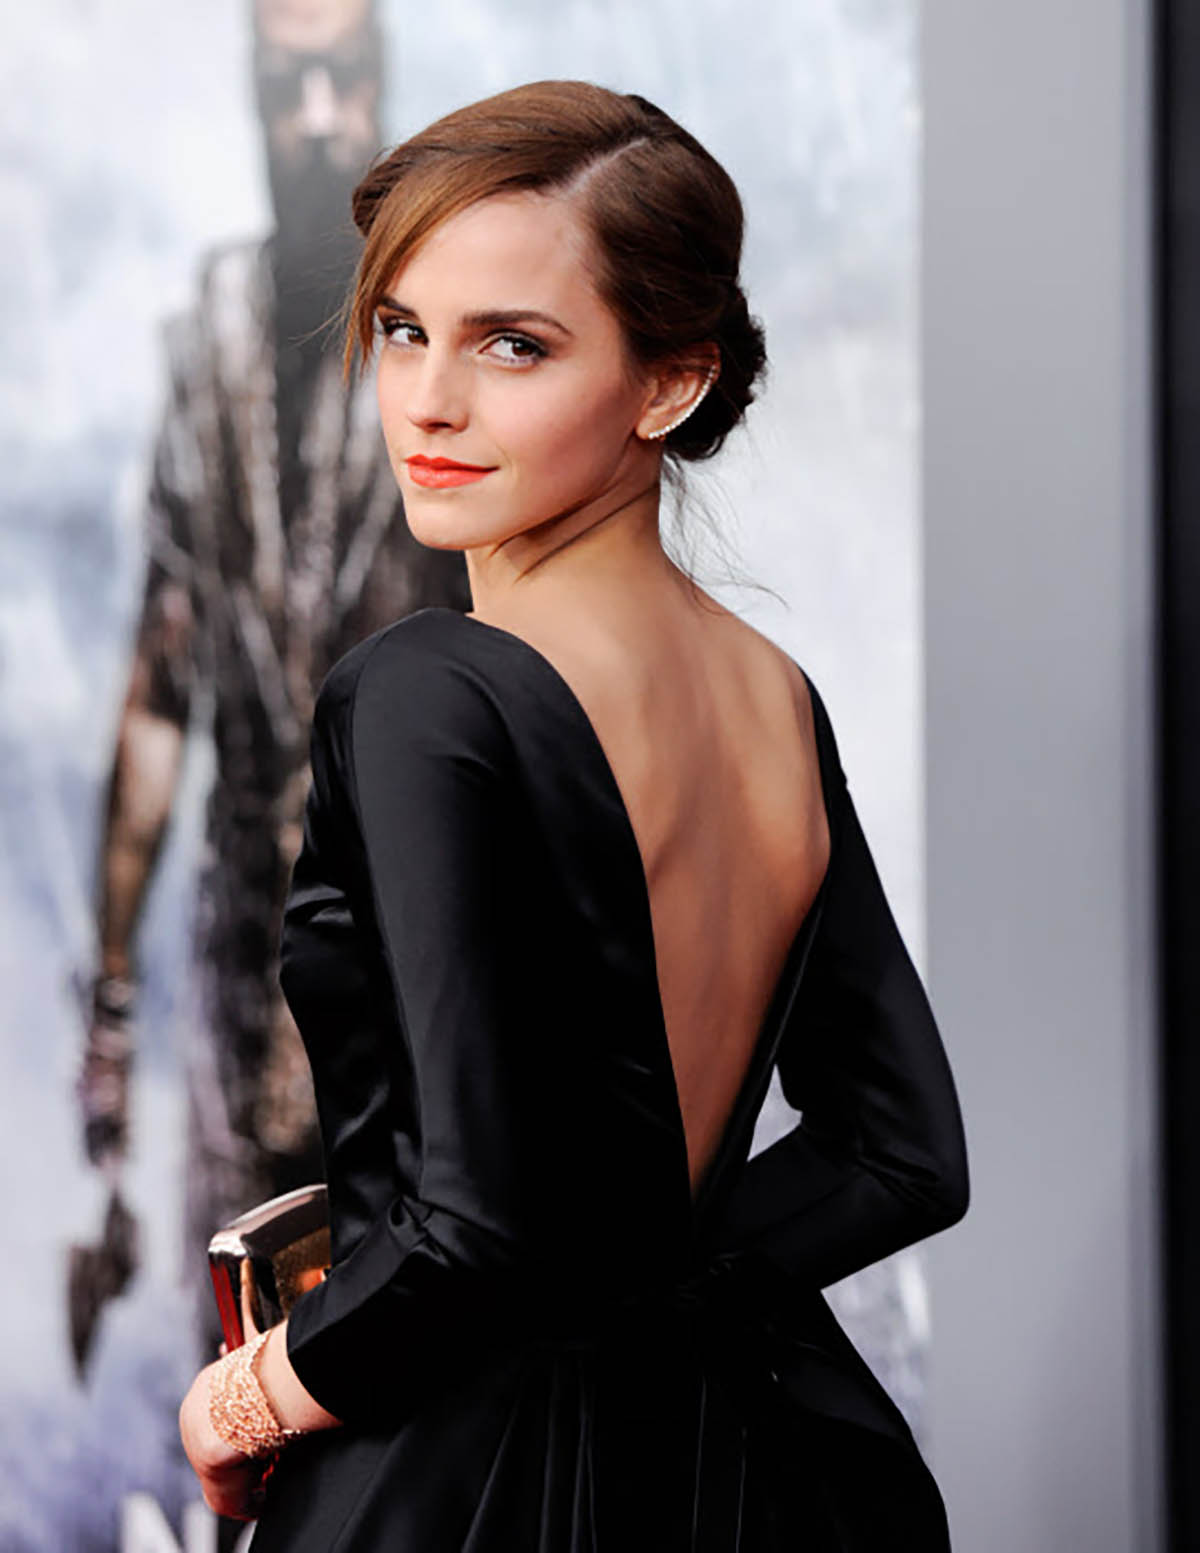 20. Emma Watson attending the premiere of Noah. Maquillaje 'top'